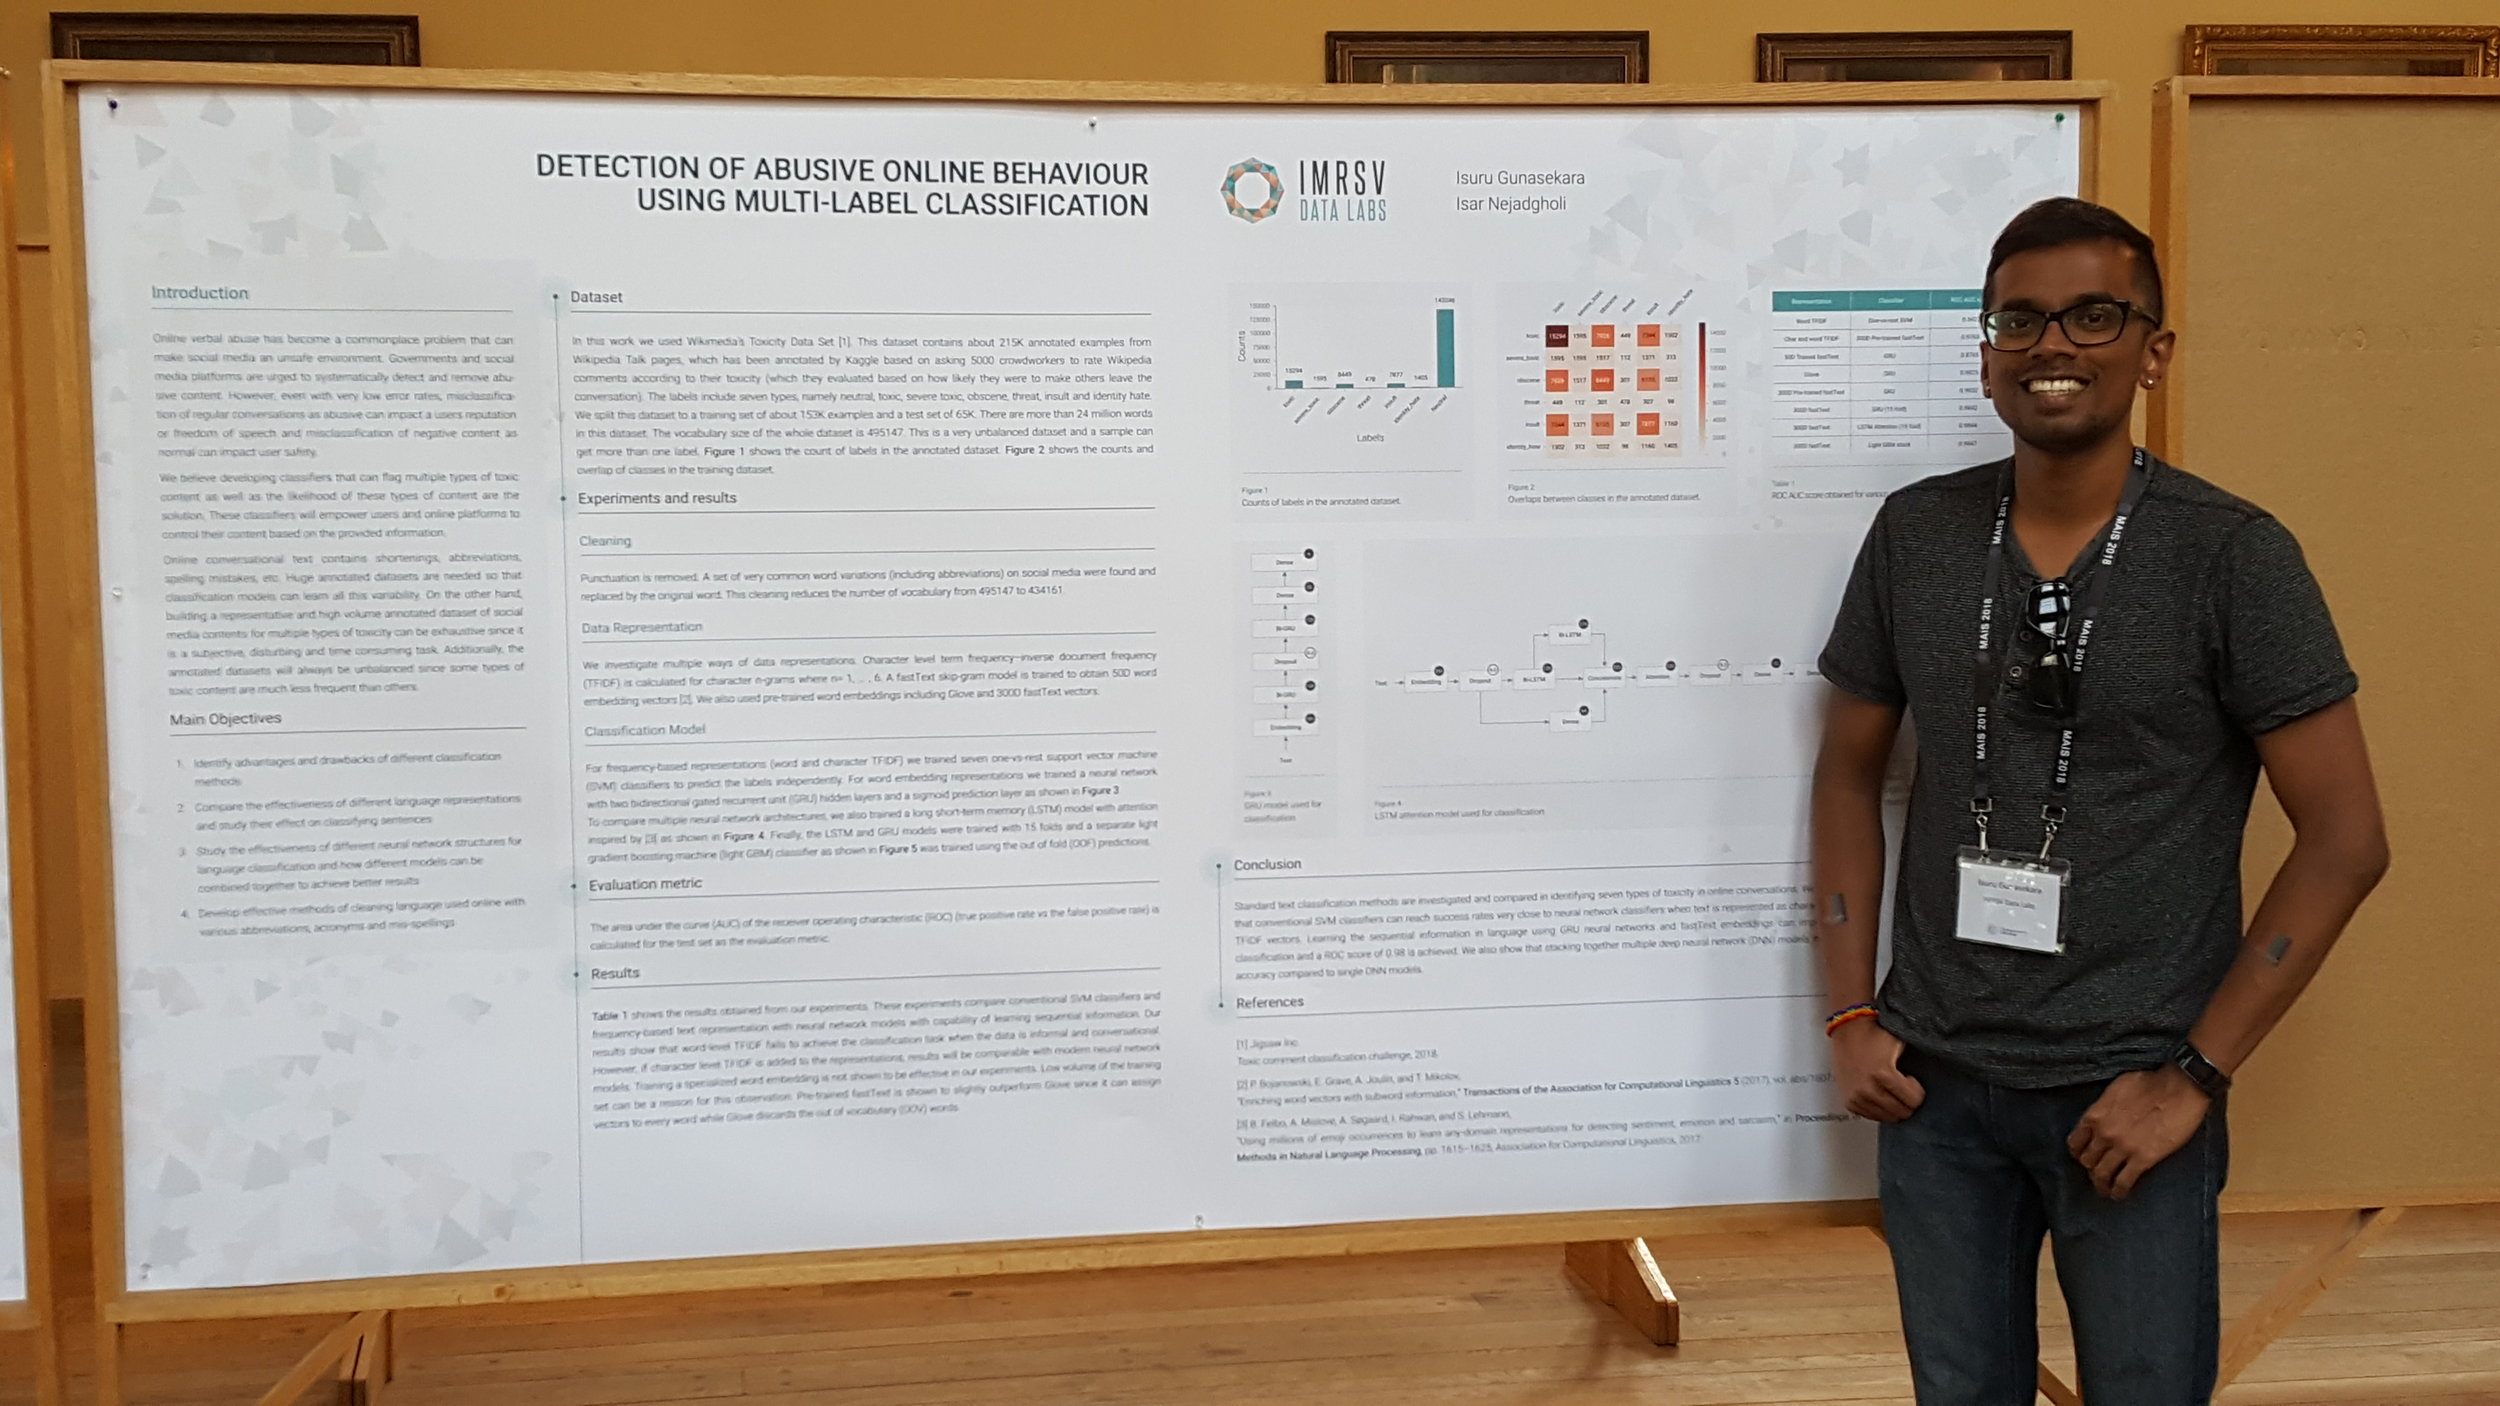 Isuru presenting  Detection of Abusive Online Behaviour using Multi-Label Classification  on the second largest poster board at the Montreal AI Symposium